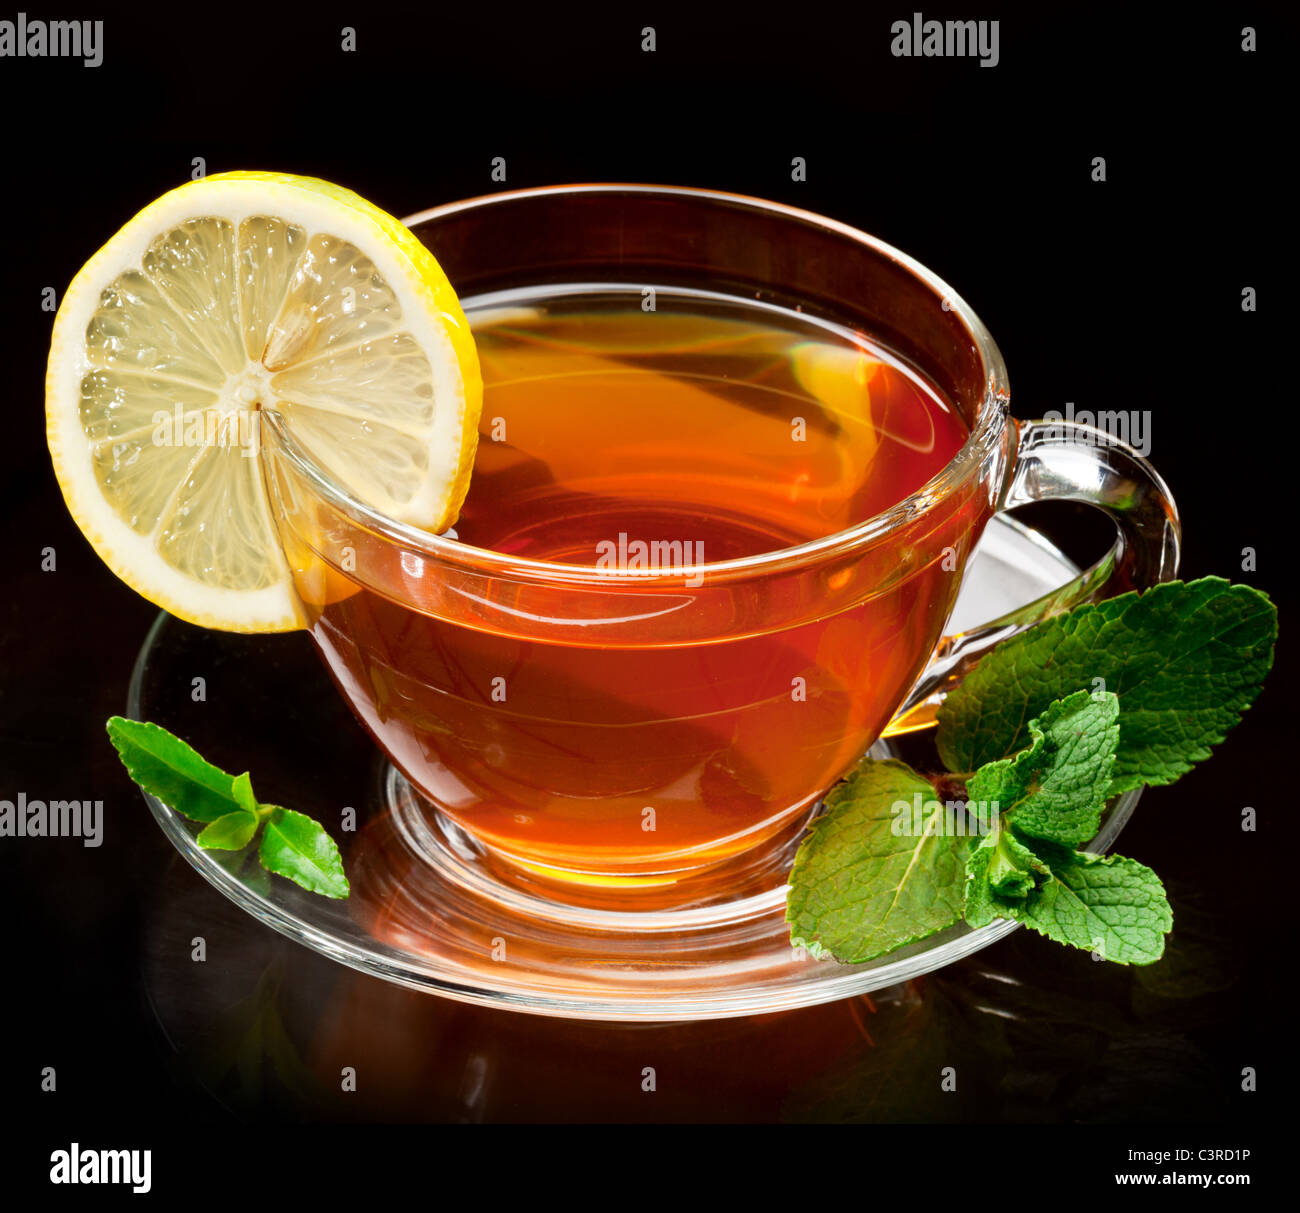 Cup tea with mint and lemon isolated on a black background. - Stock Image